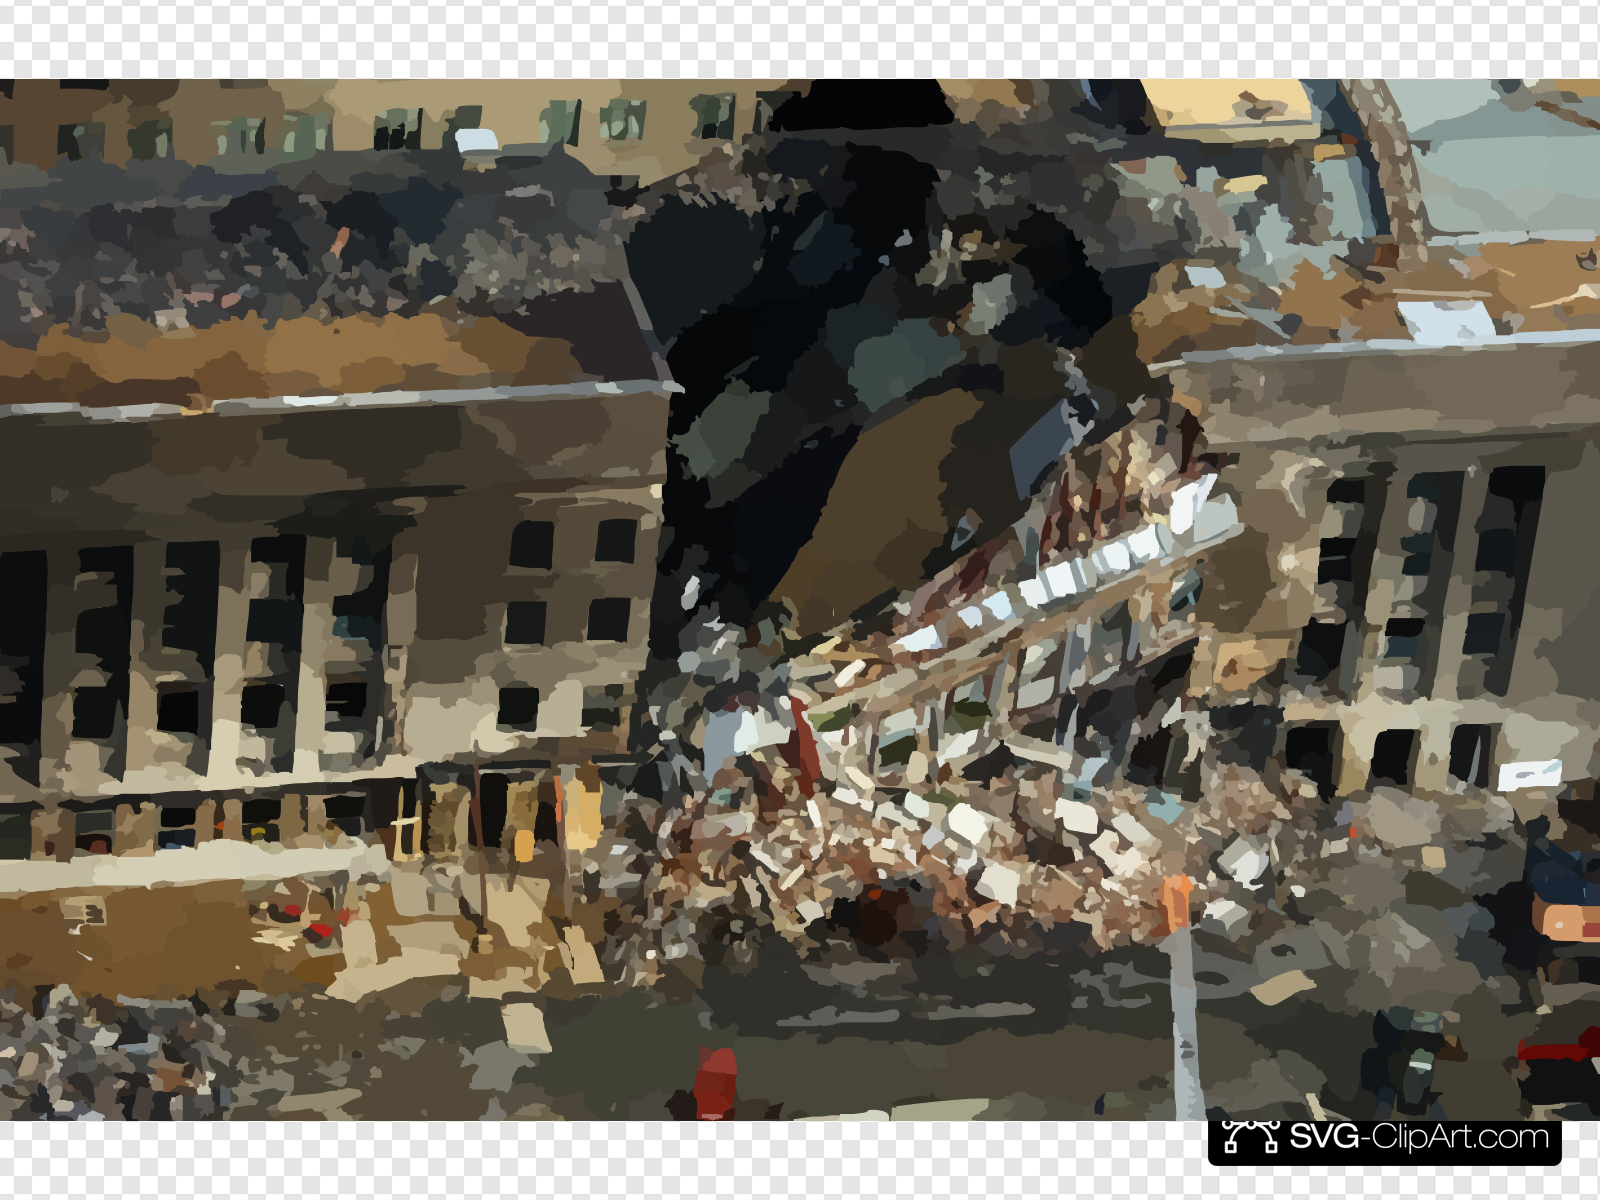 Aerial View Of Pentagon Destruction Clip art, Icon and SVG.